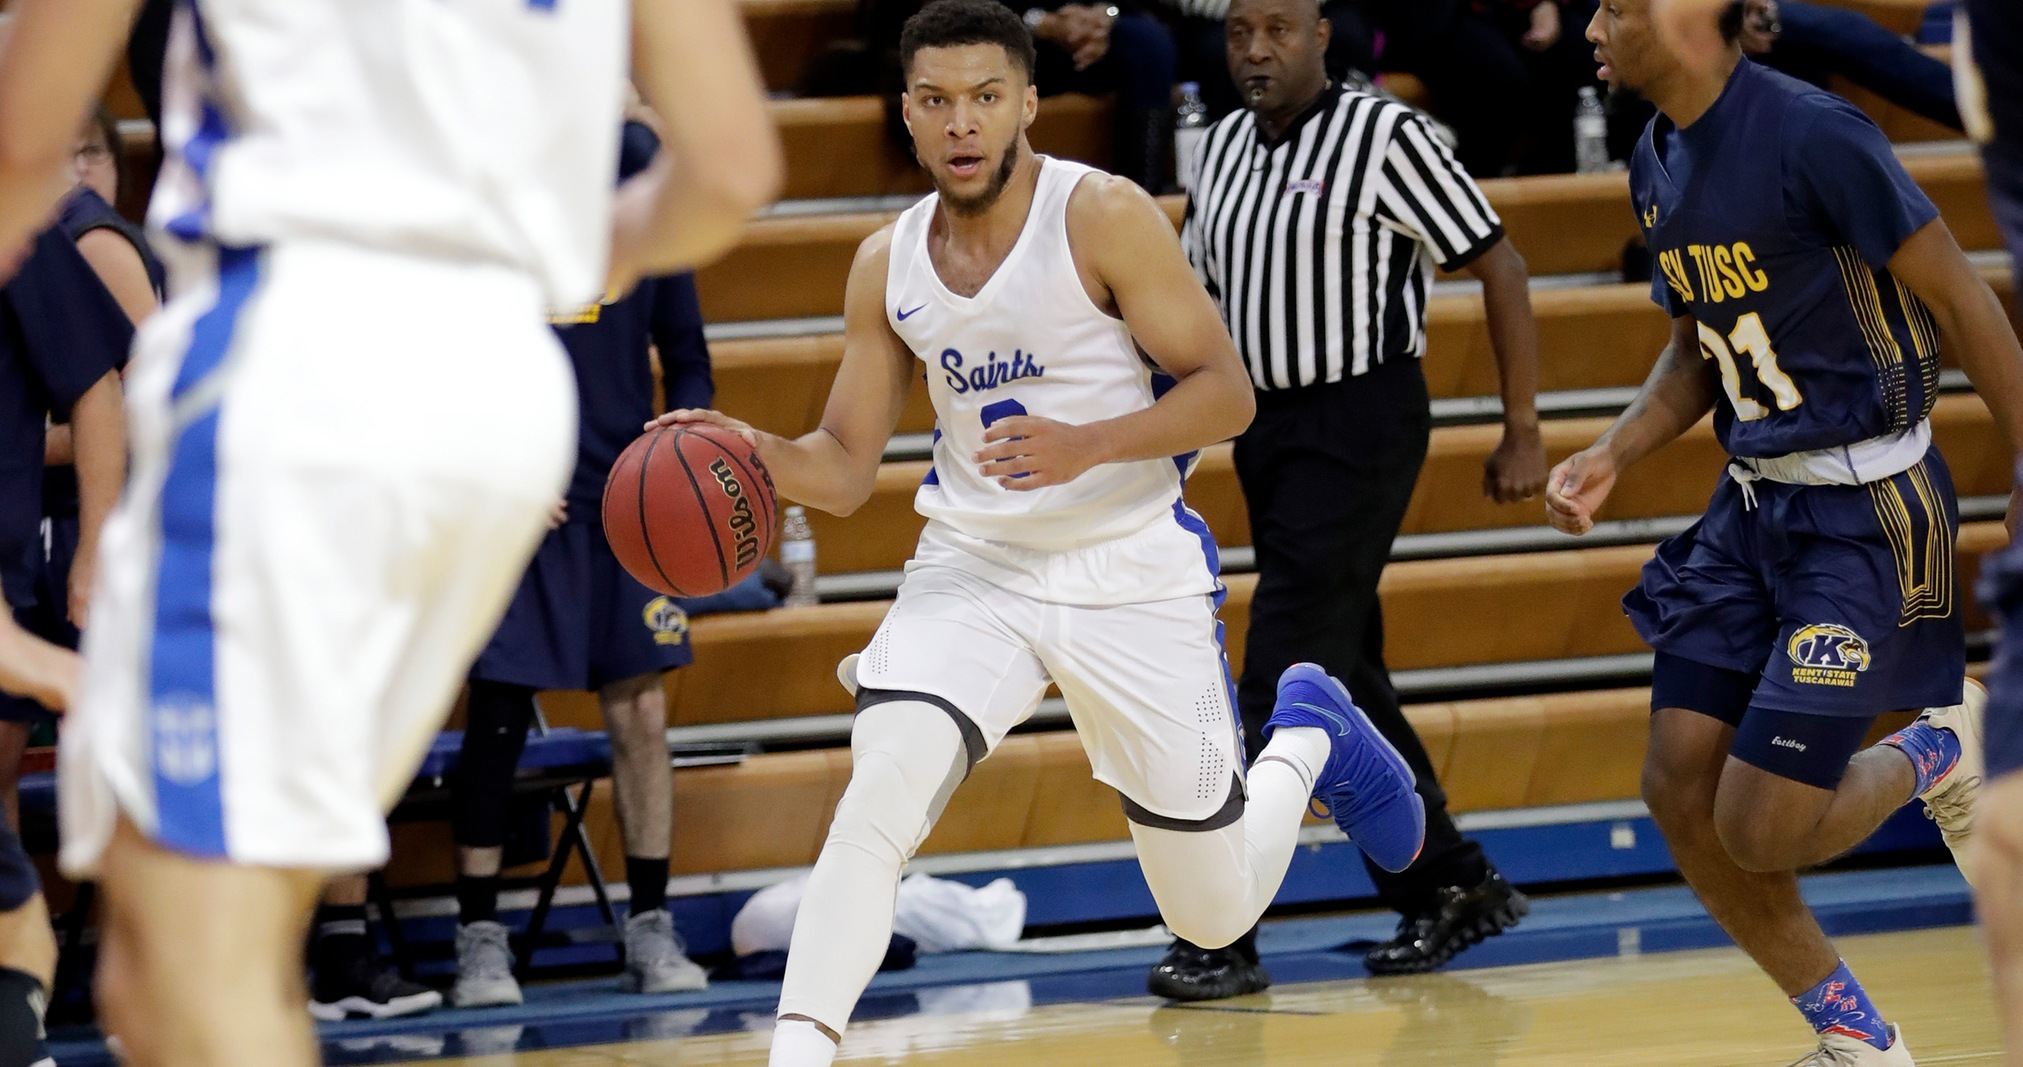 Men's Basketball Falls to ONU, 65-62, in Final Seconds